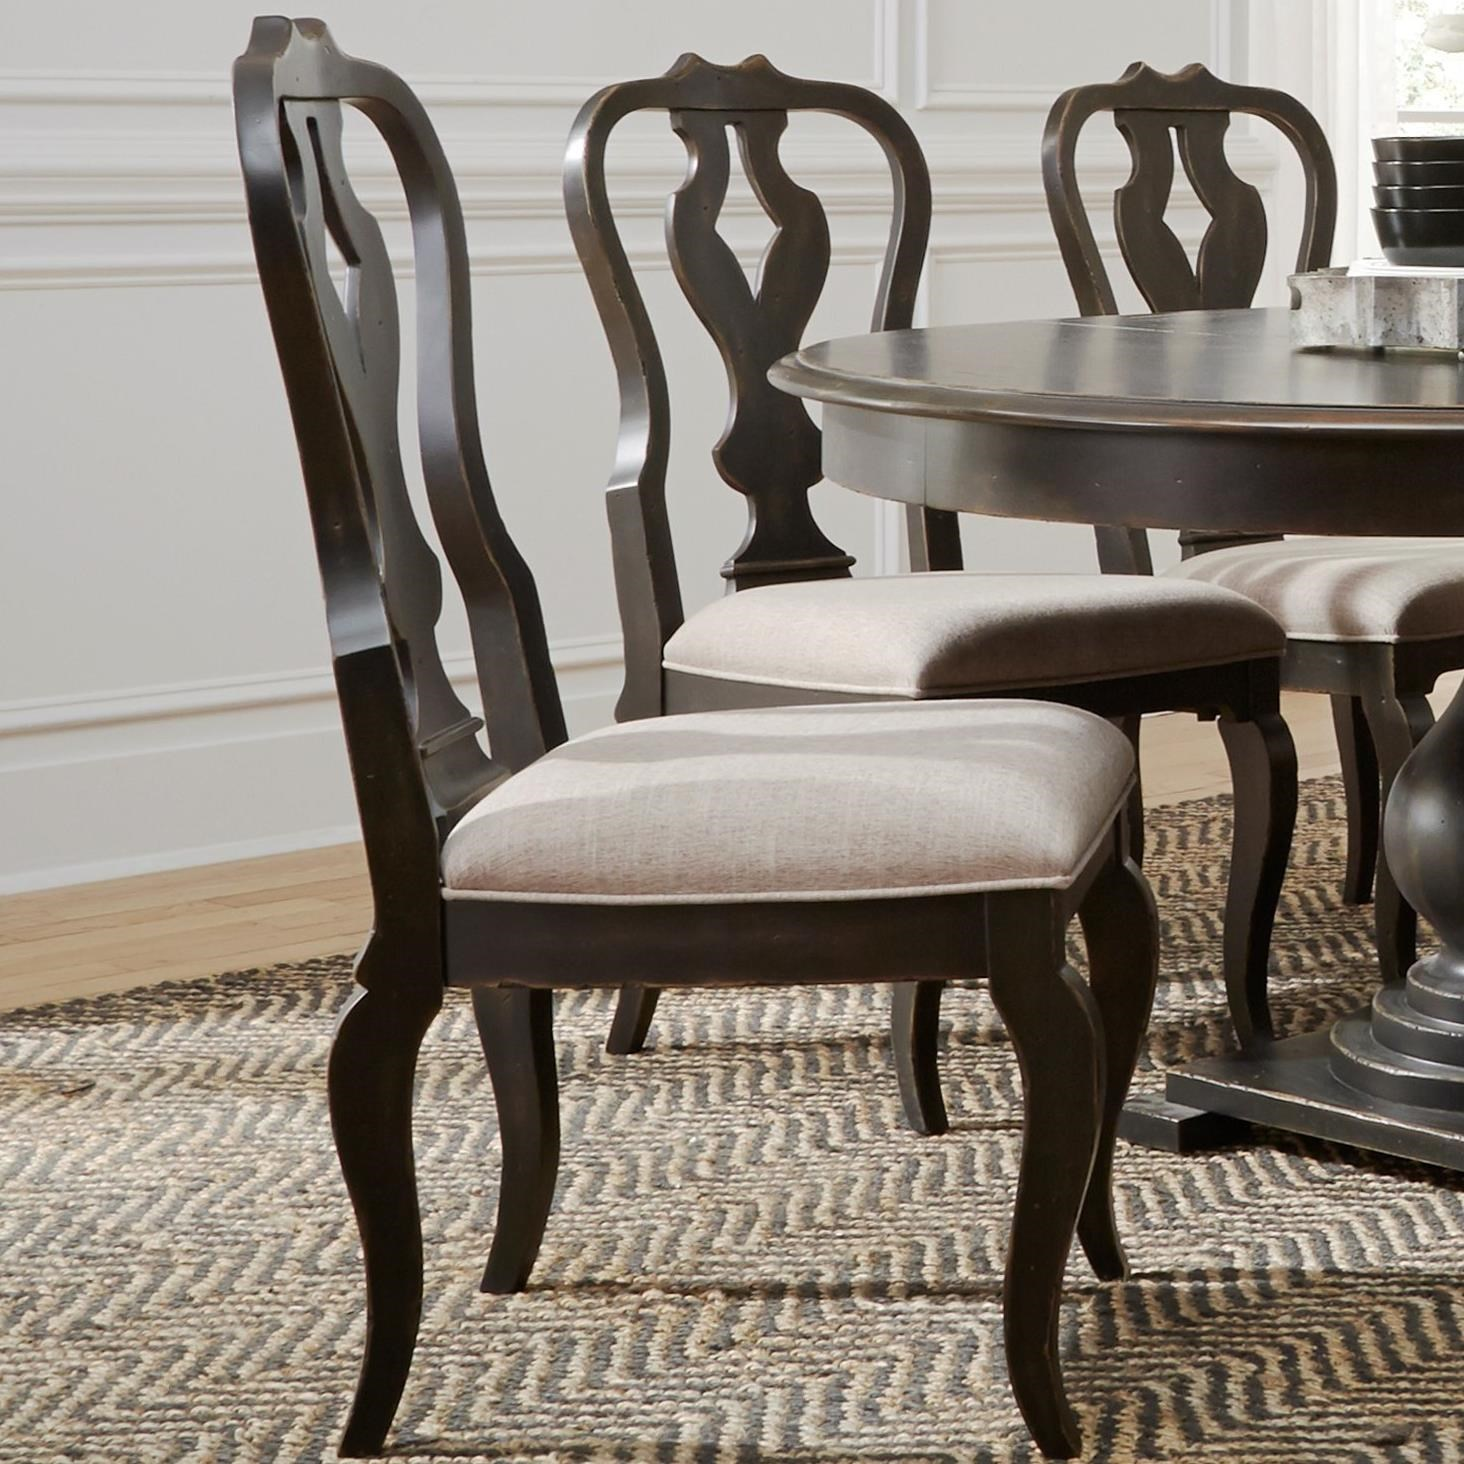 Chesapeake Splat Back Side Chair by Libby at Walker's Furniture